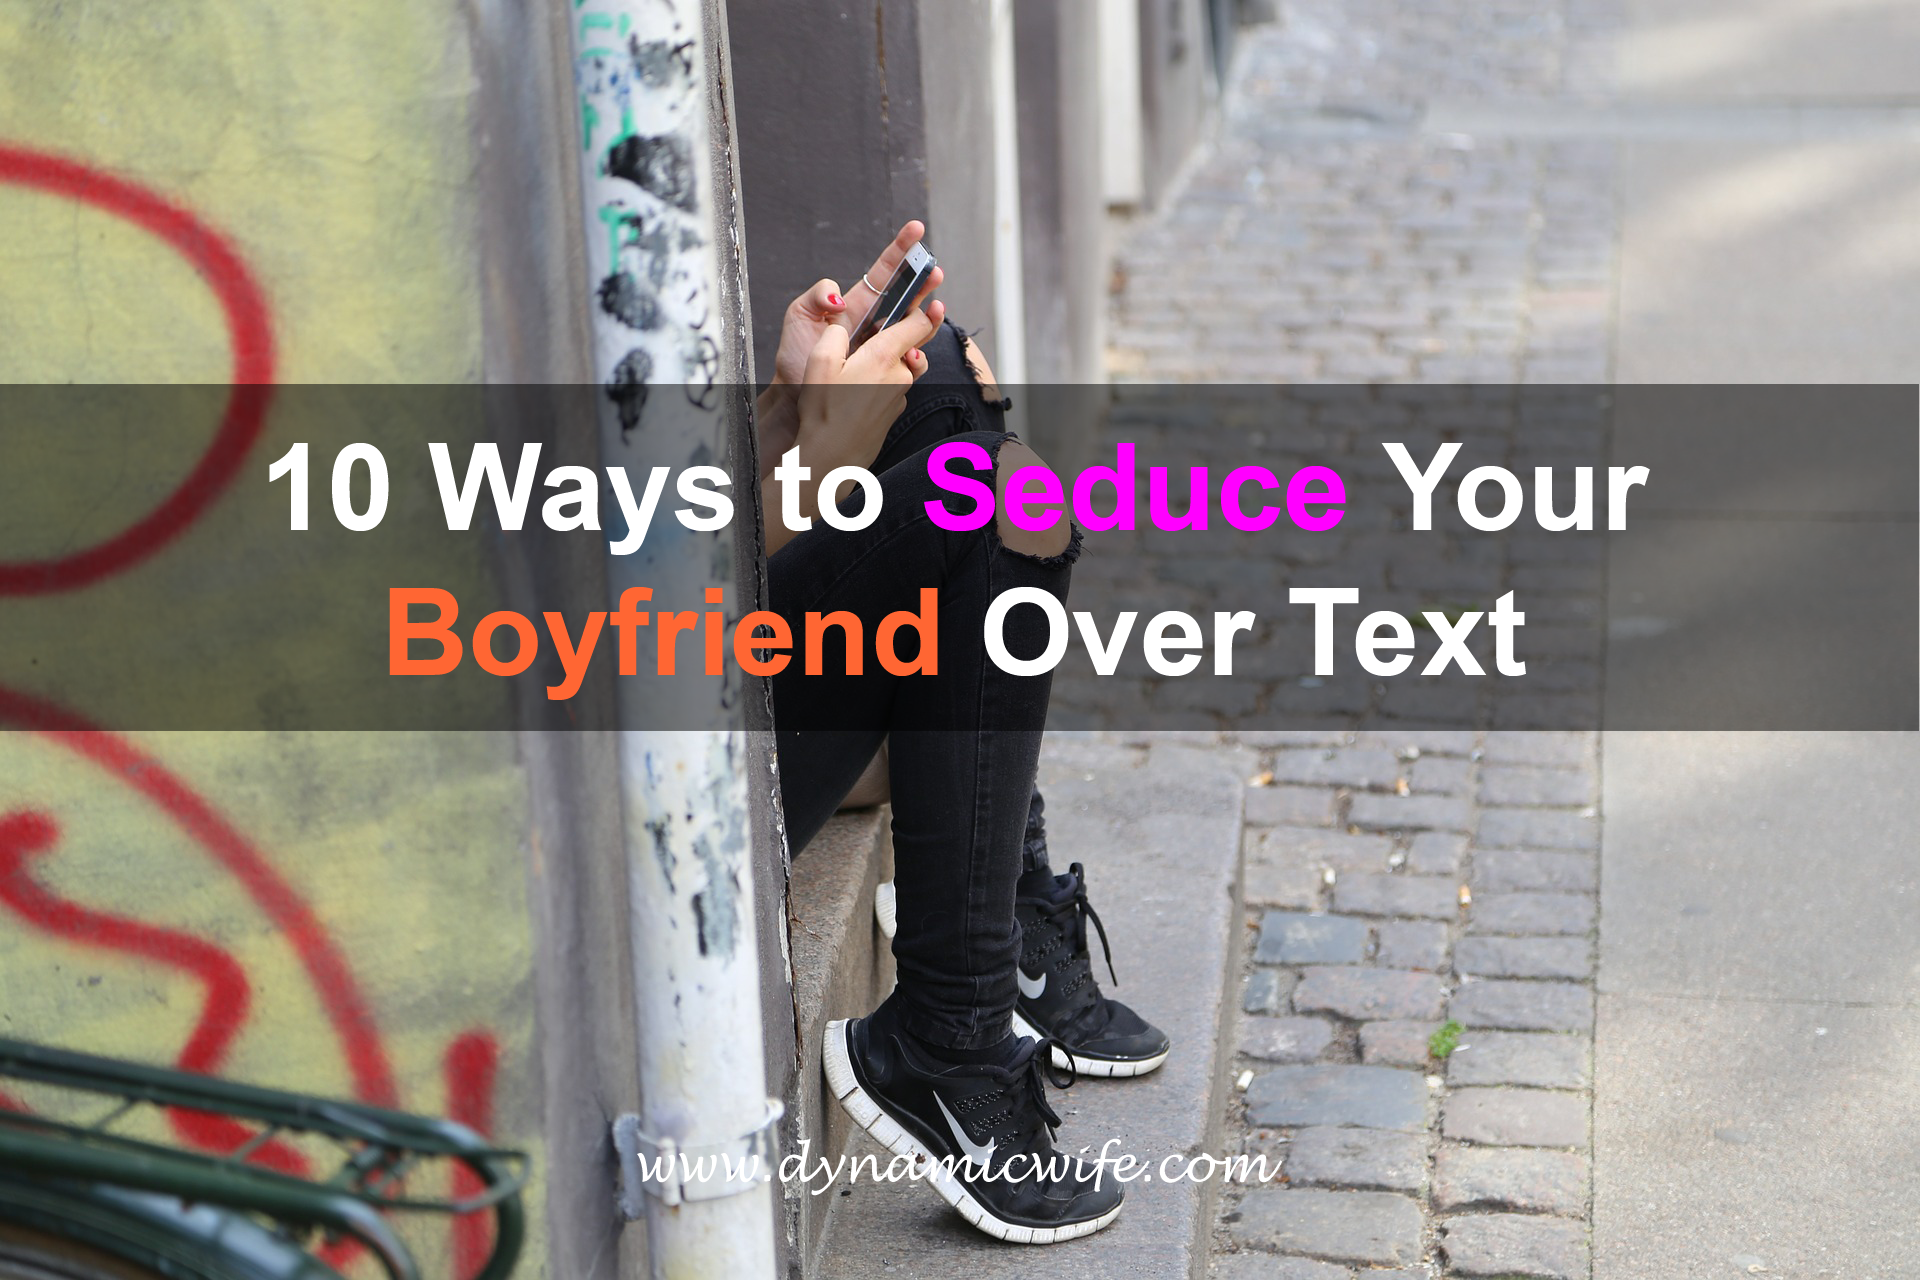 What to say to seduce a man over text